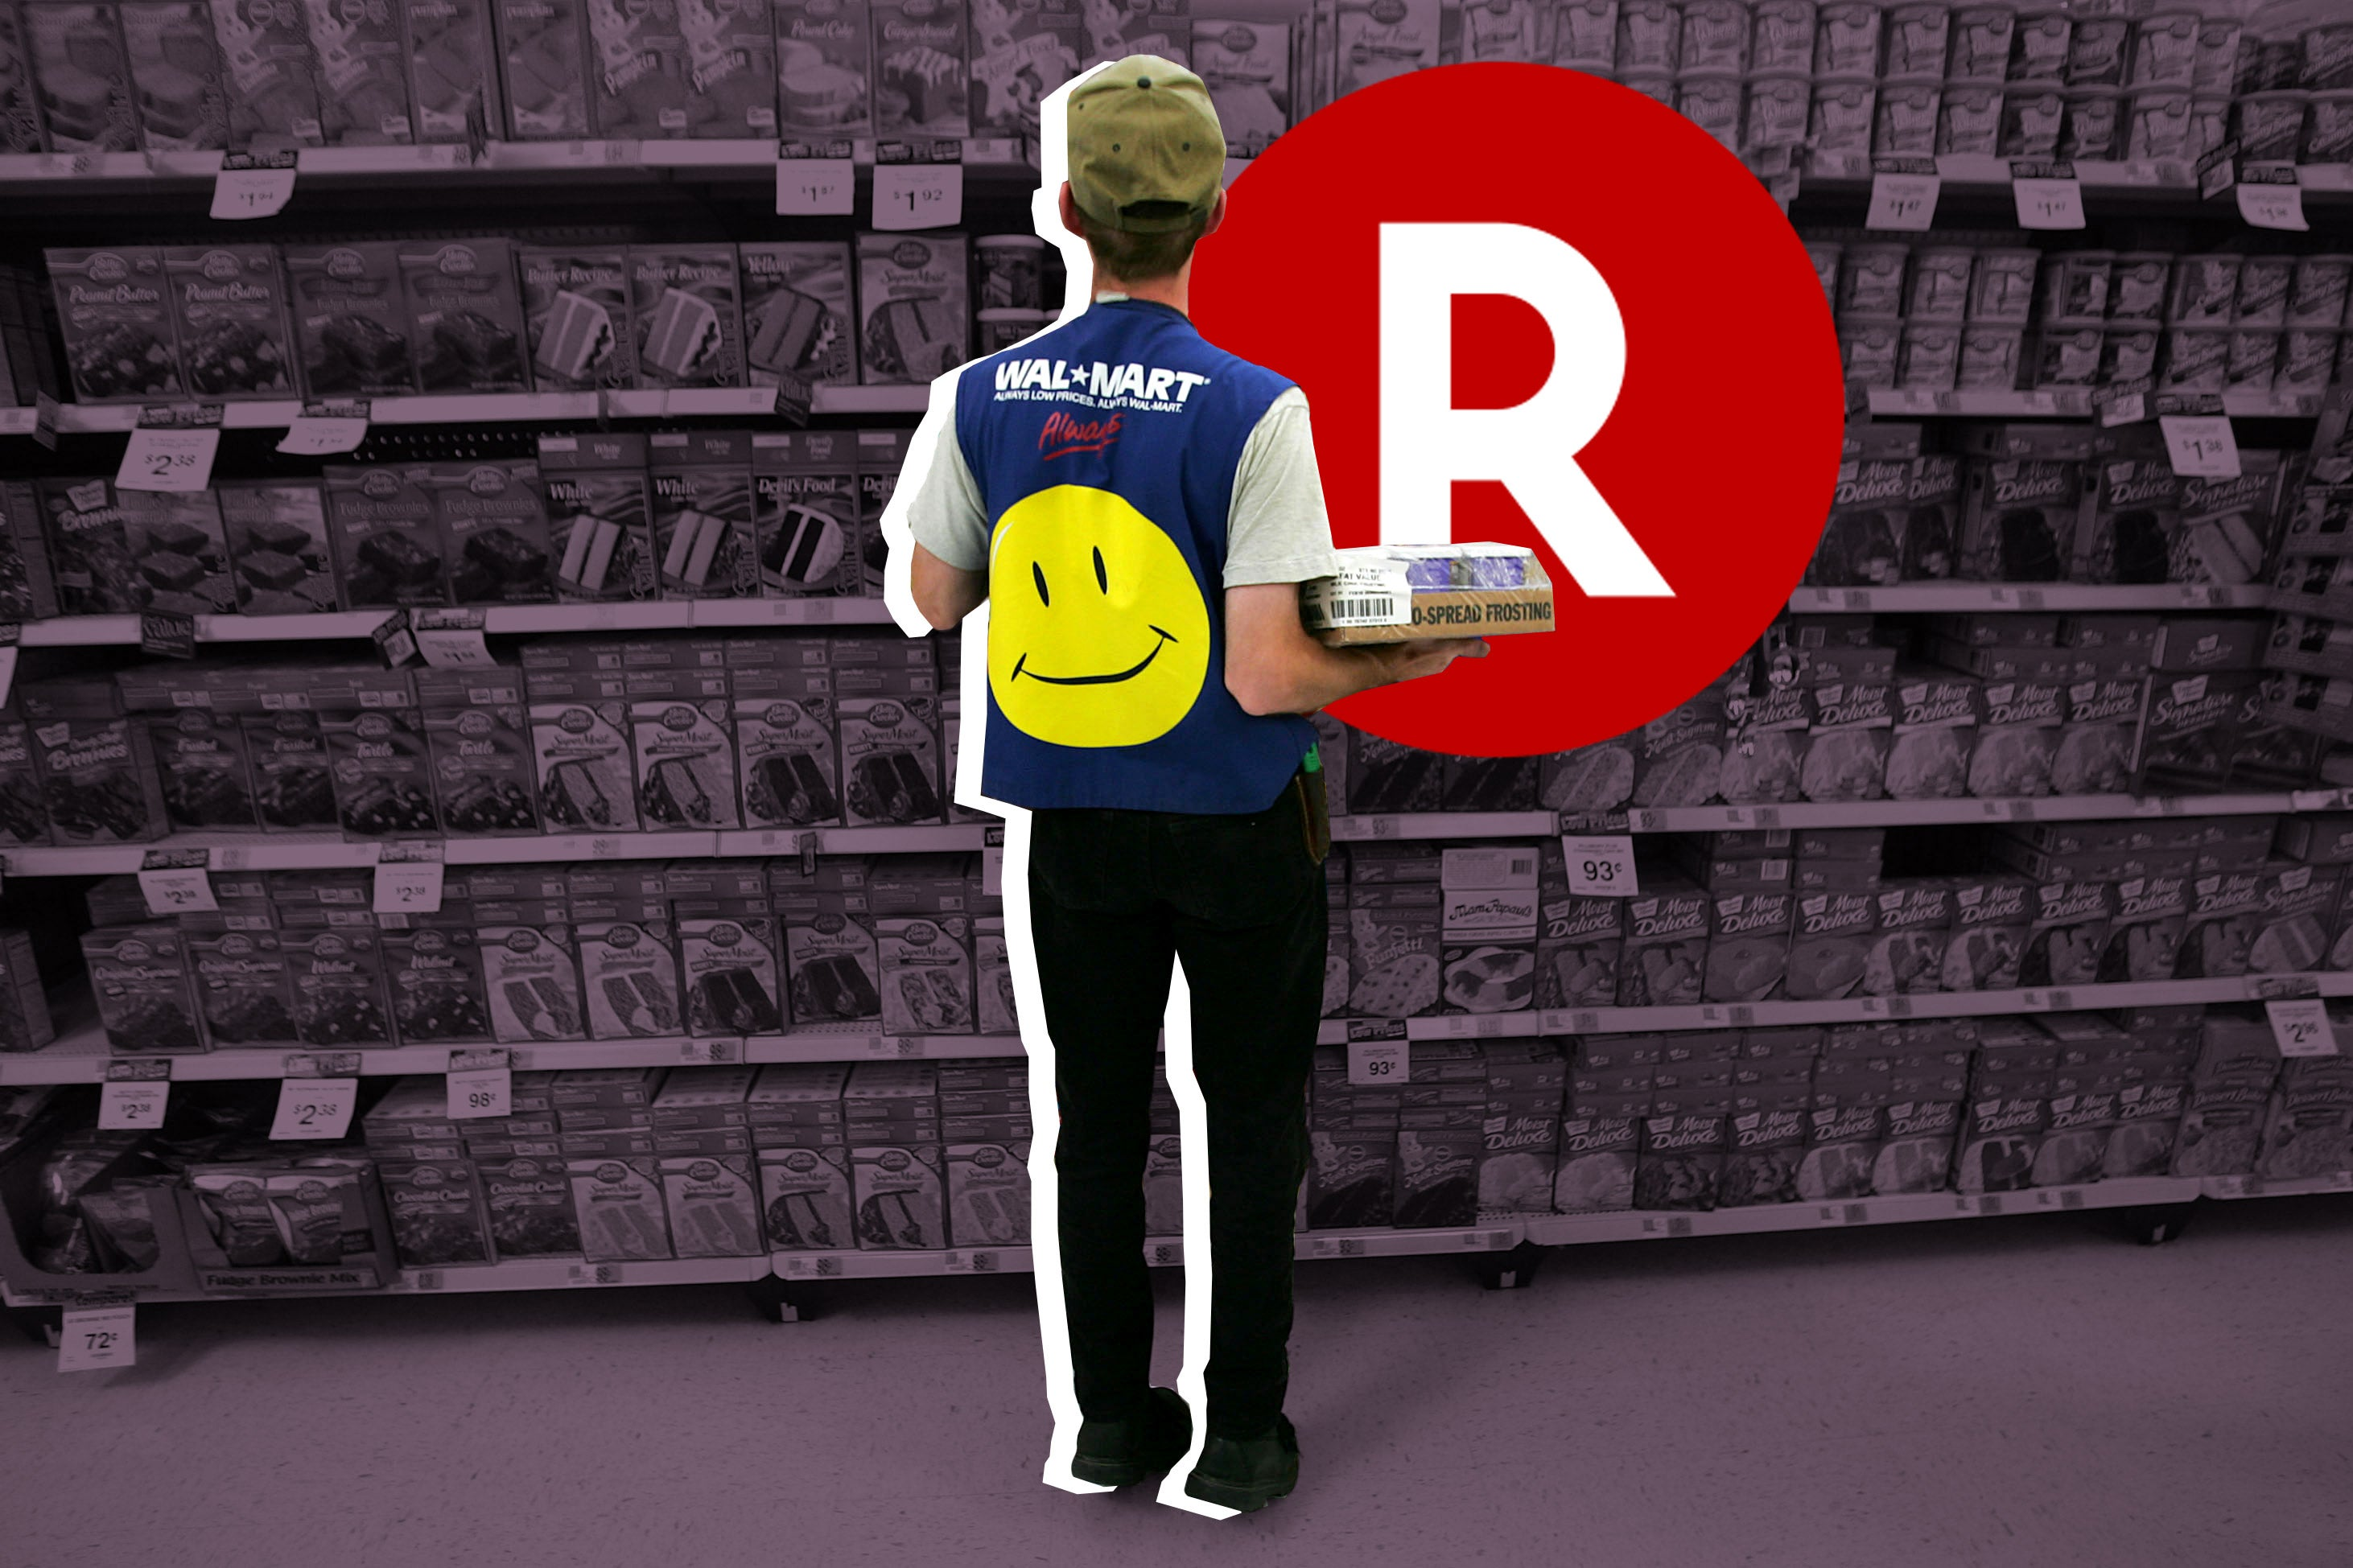 An illustration in which an employee restocks a shelf of a Walmart Supercenter beneath the Rakuten logo.